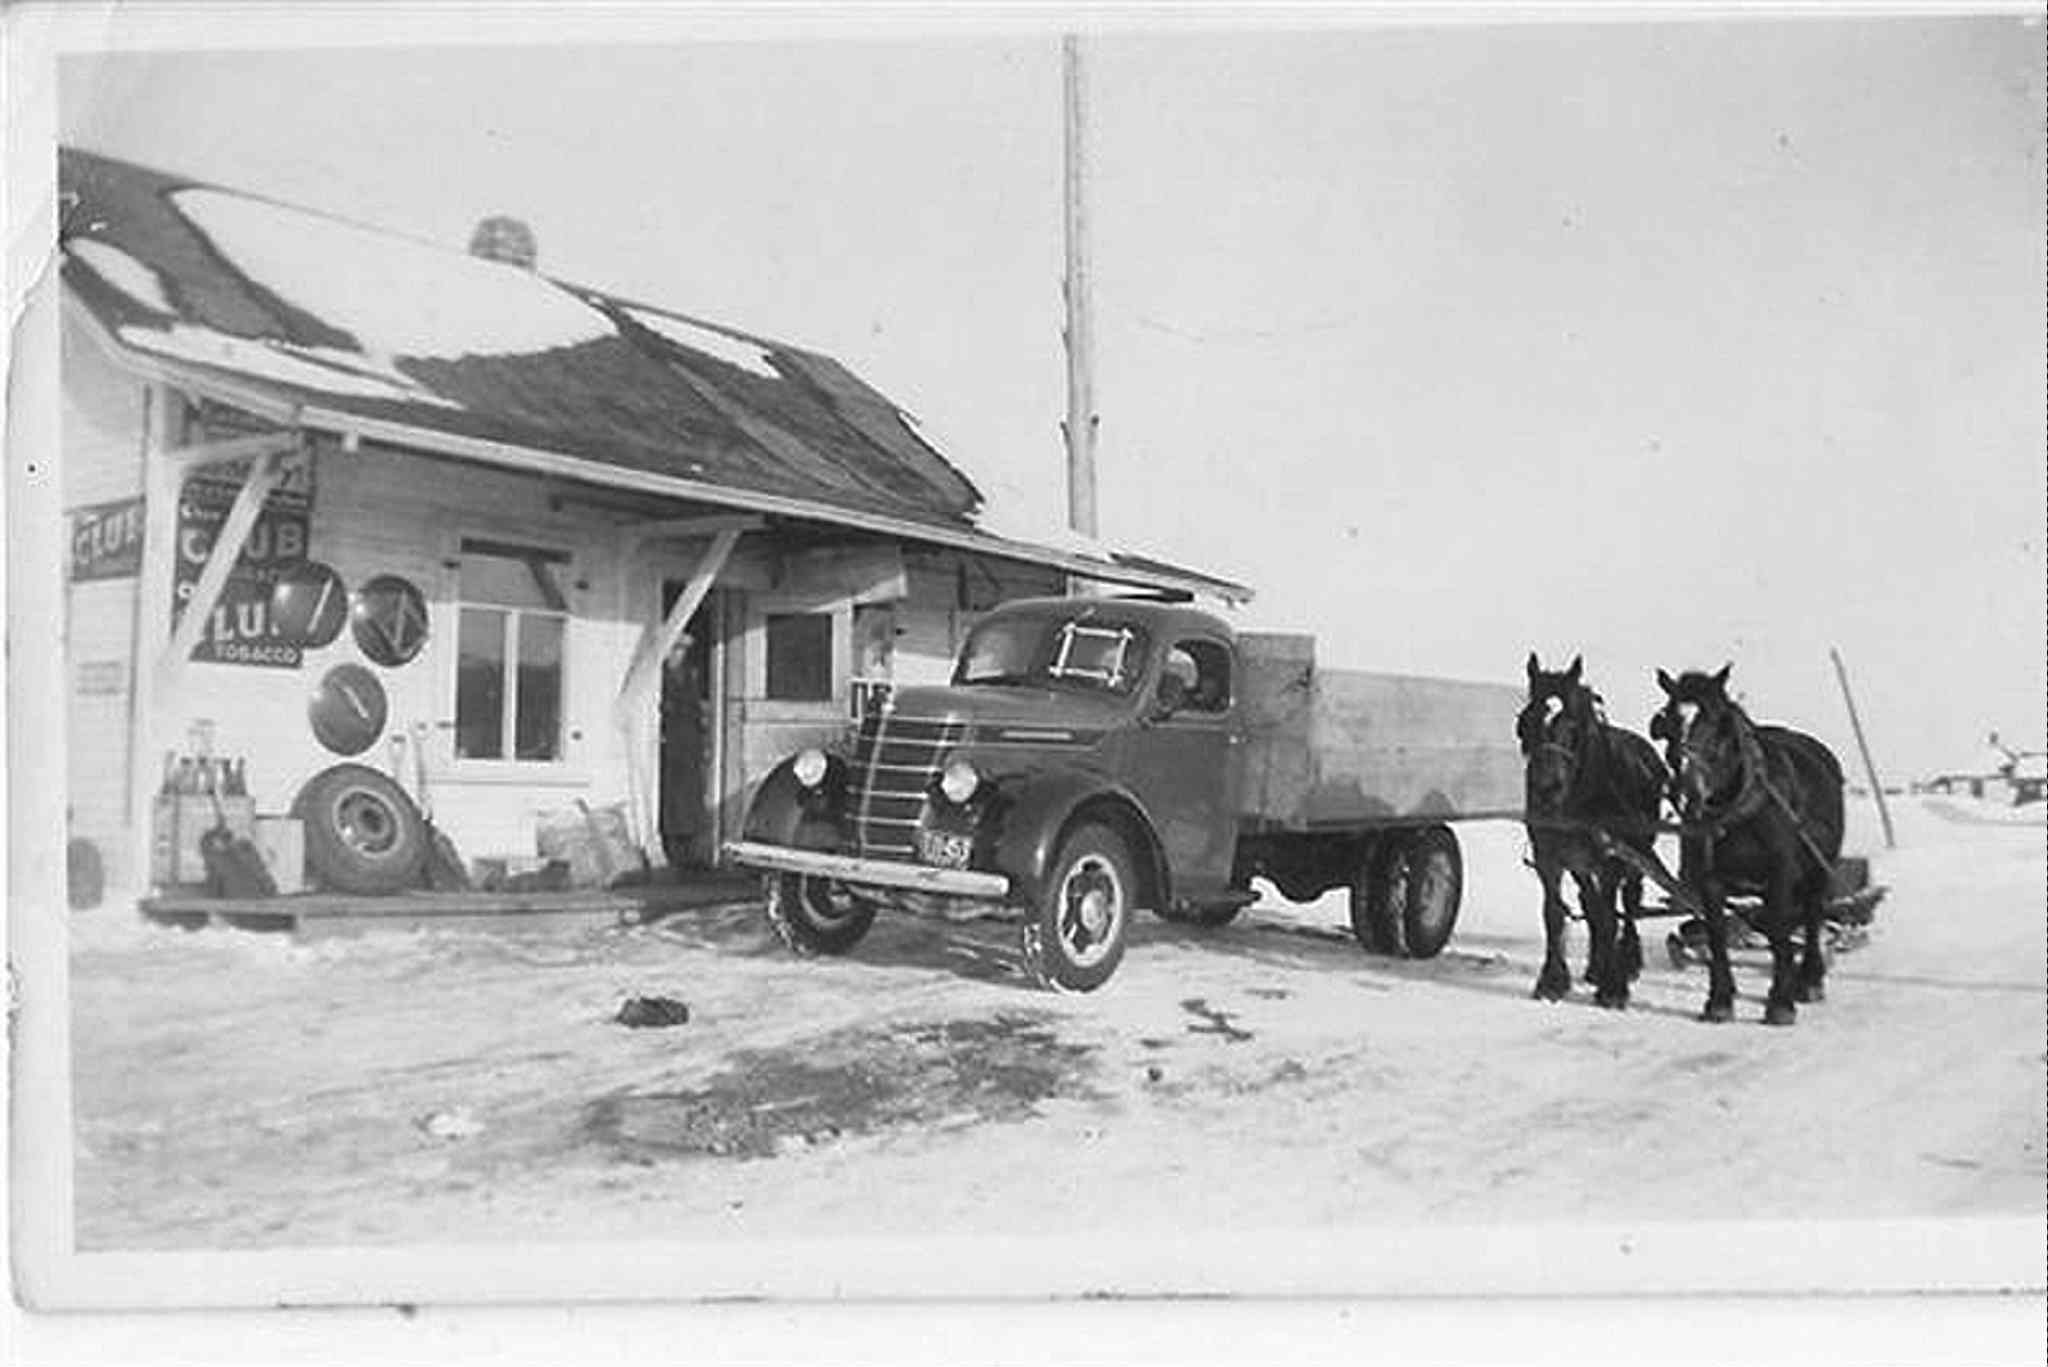 Qually Brothers store in Dacotah, Man. in the early 1940s.